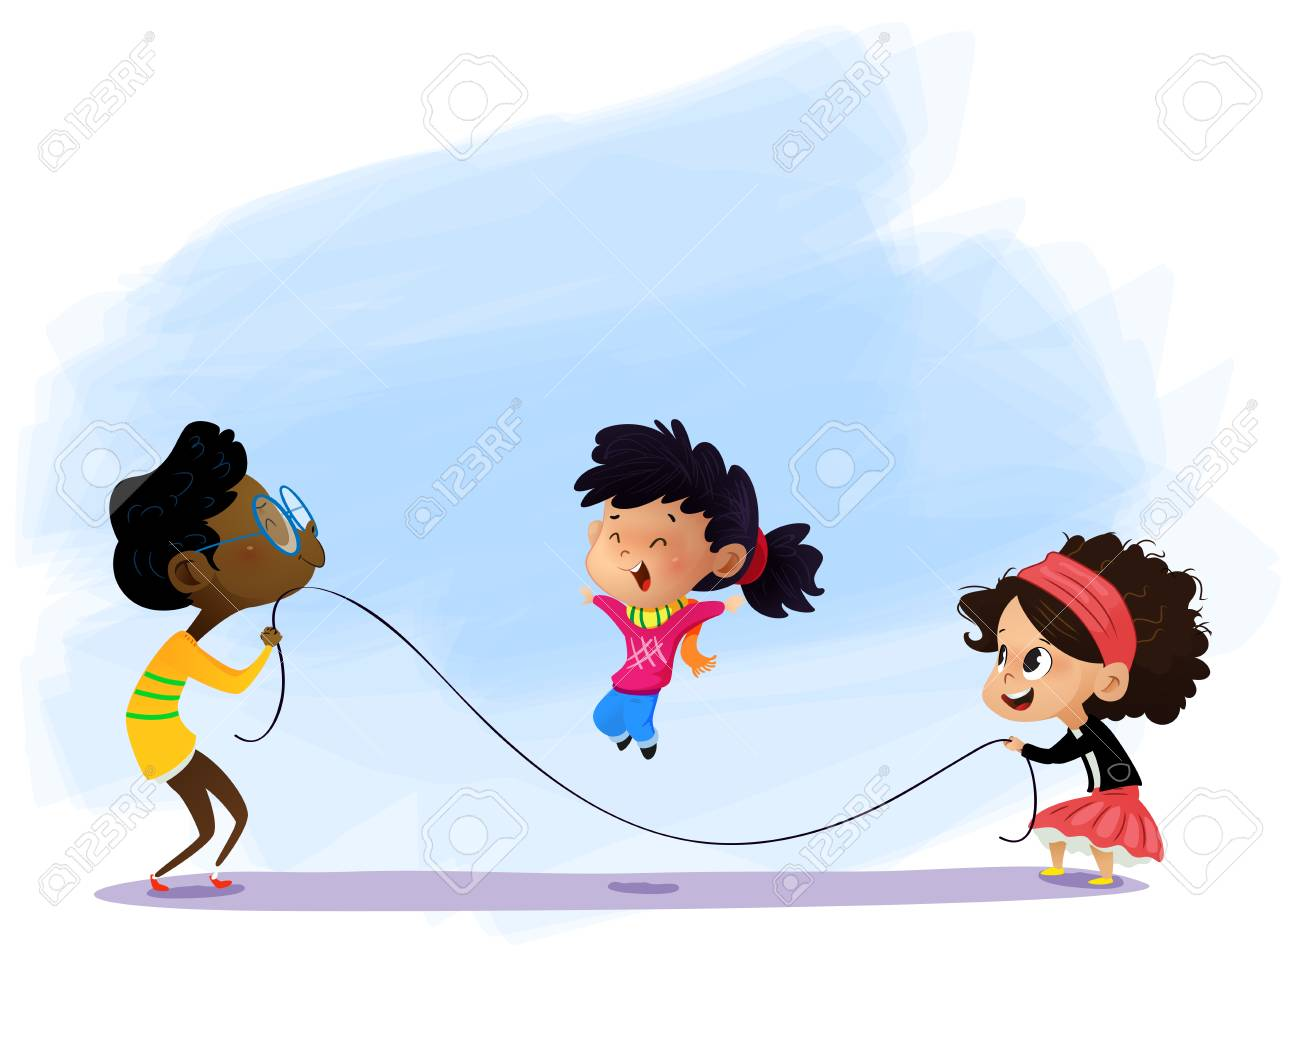 Children Playing Jumping Rope Cartoon Vector Illustration Royalty Free Cliparts Vectors And Stock Illustration Image 125453262